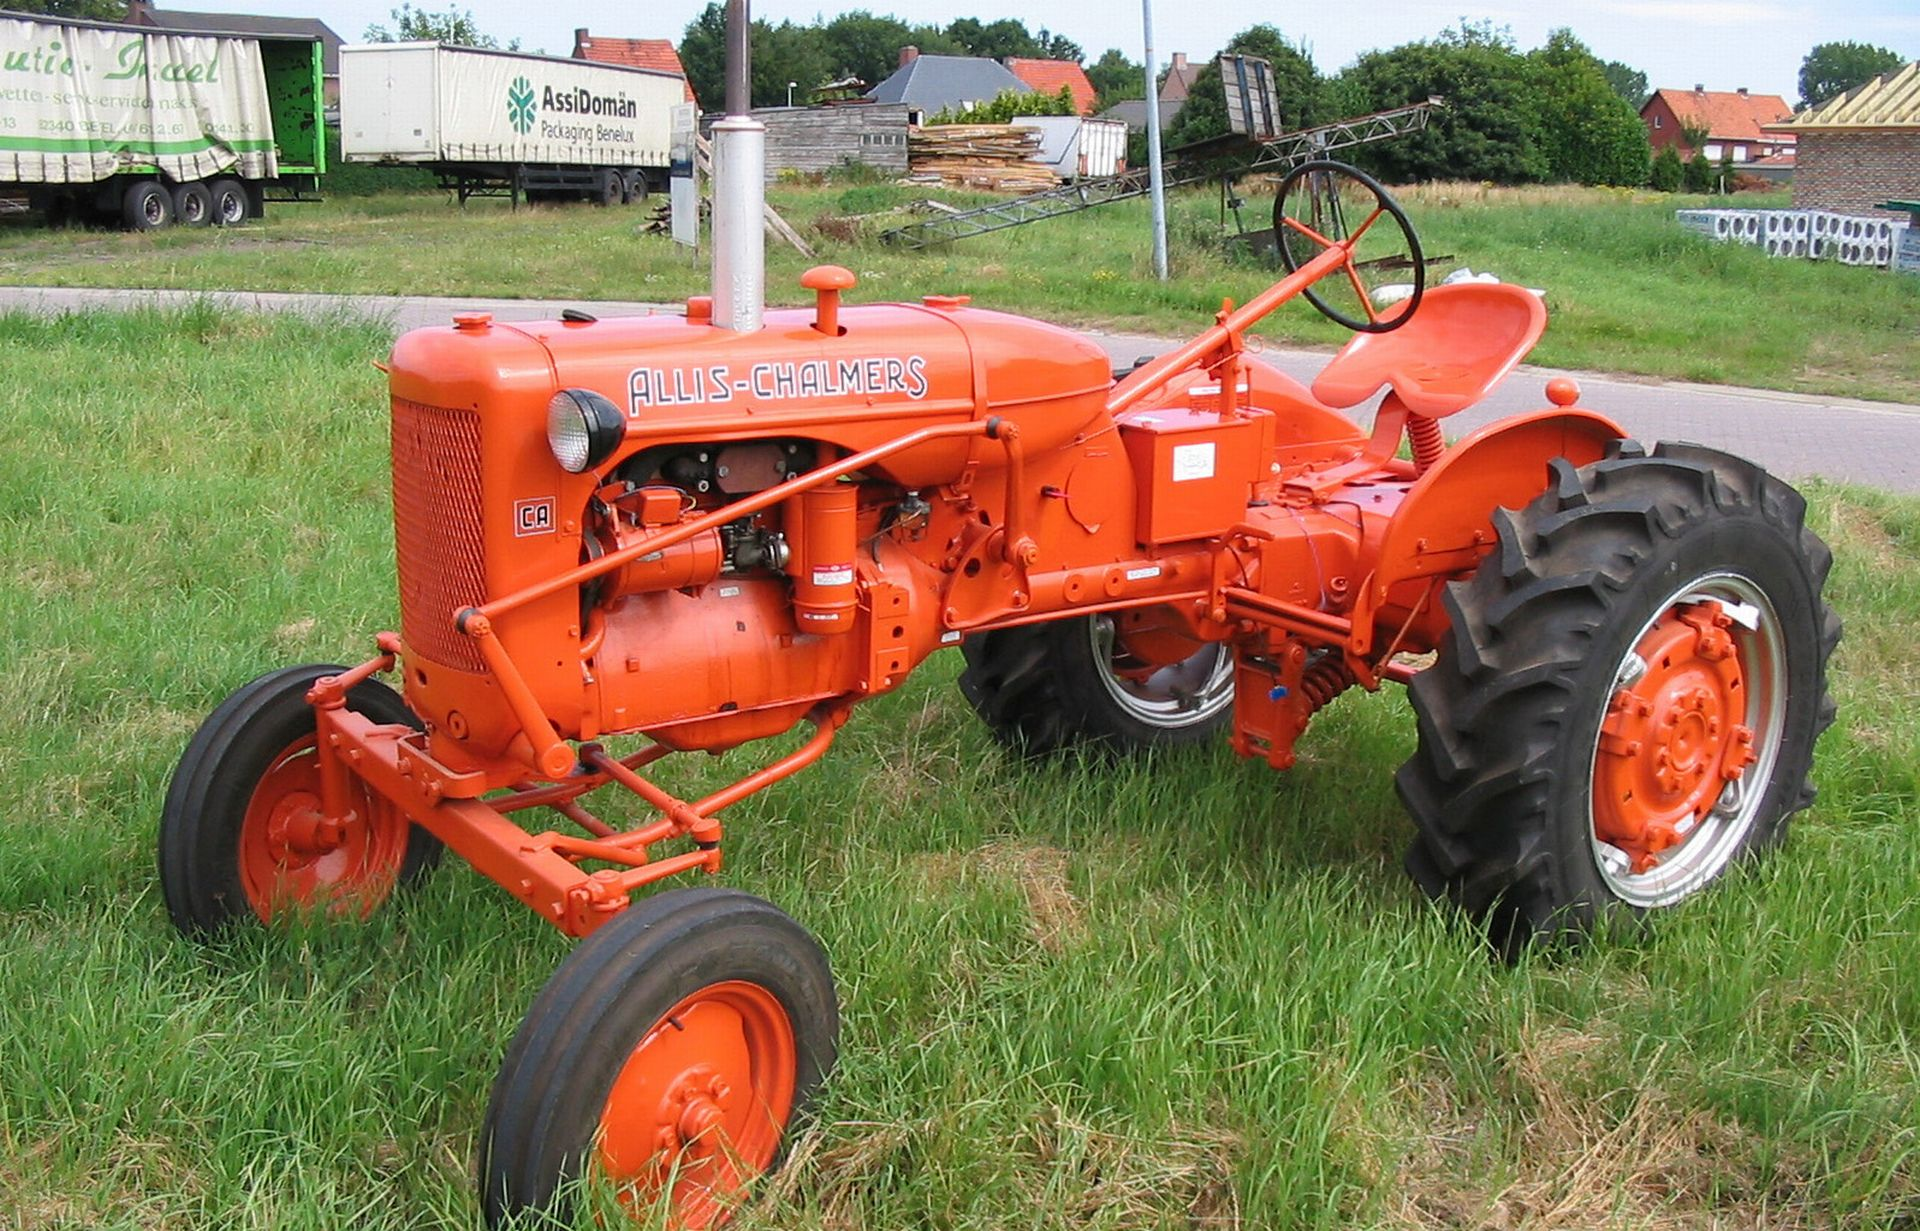 Allis Chalmers Tractor : Tractors wallpapers allis chalmers ca wallpaper view